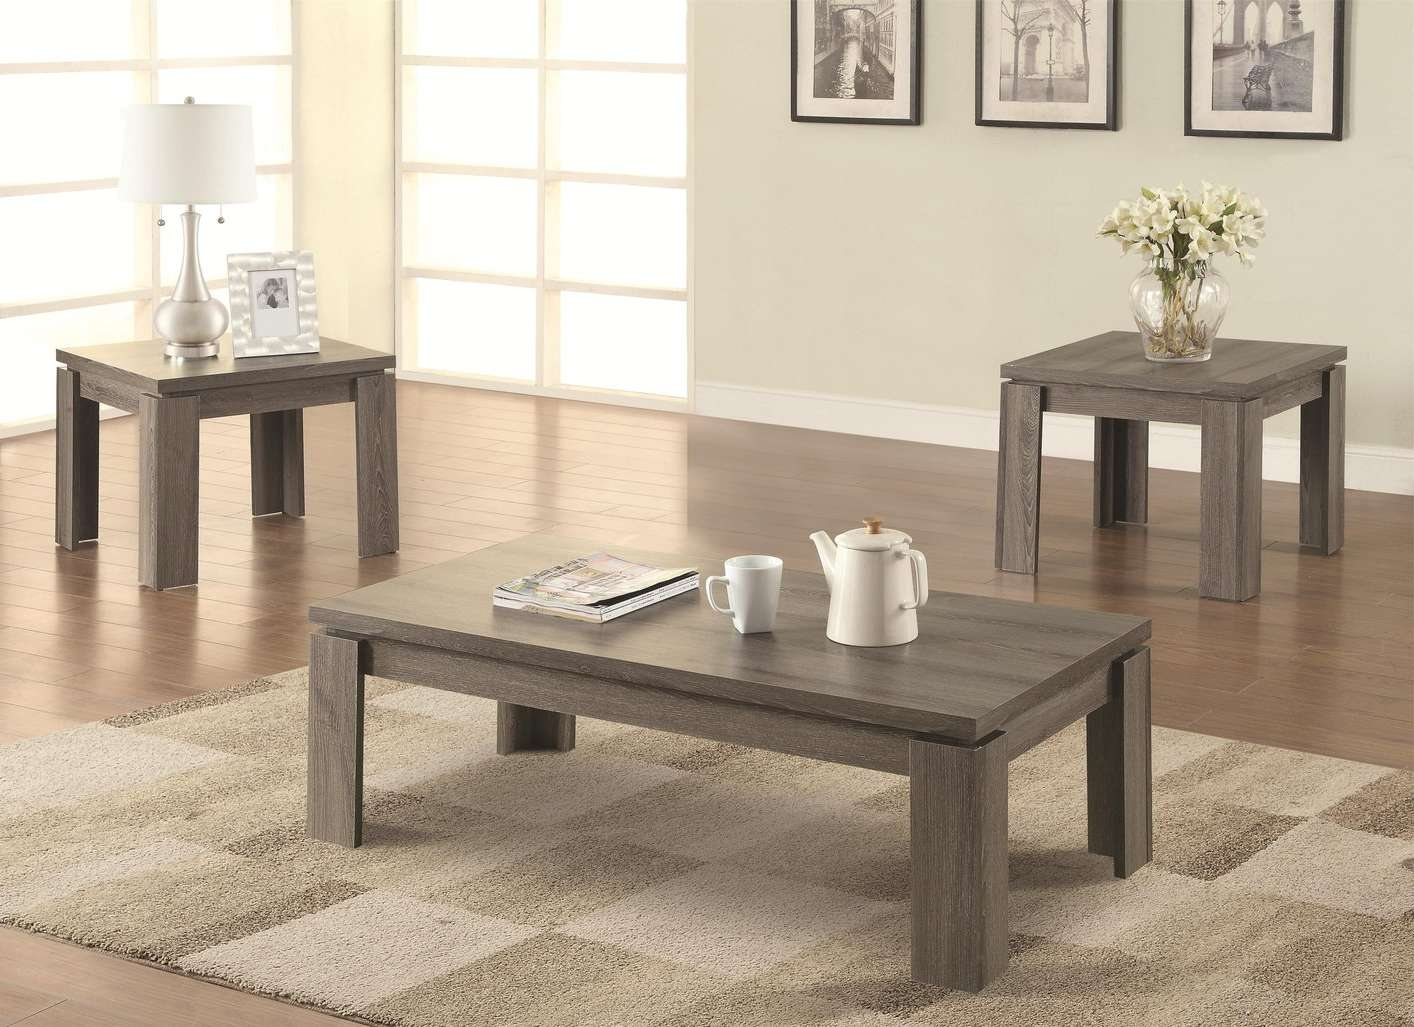 Widely Used Grey Coffee Table Sets Intended For Sleek And Stylish Coffee Table Sets – Bestartisticinteriors (View 20 of 20)